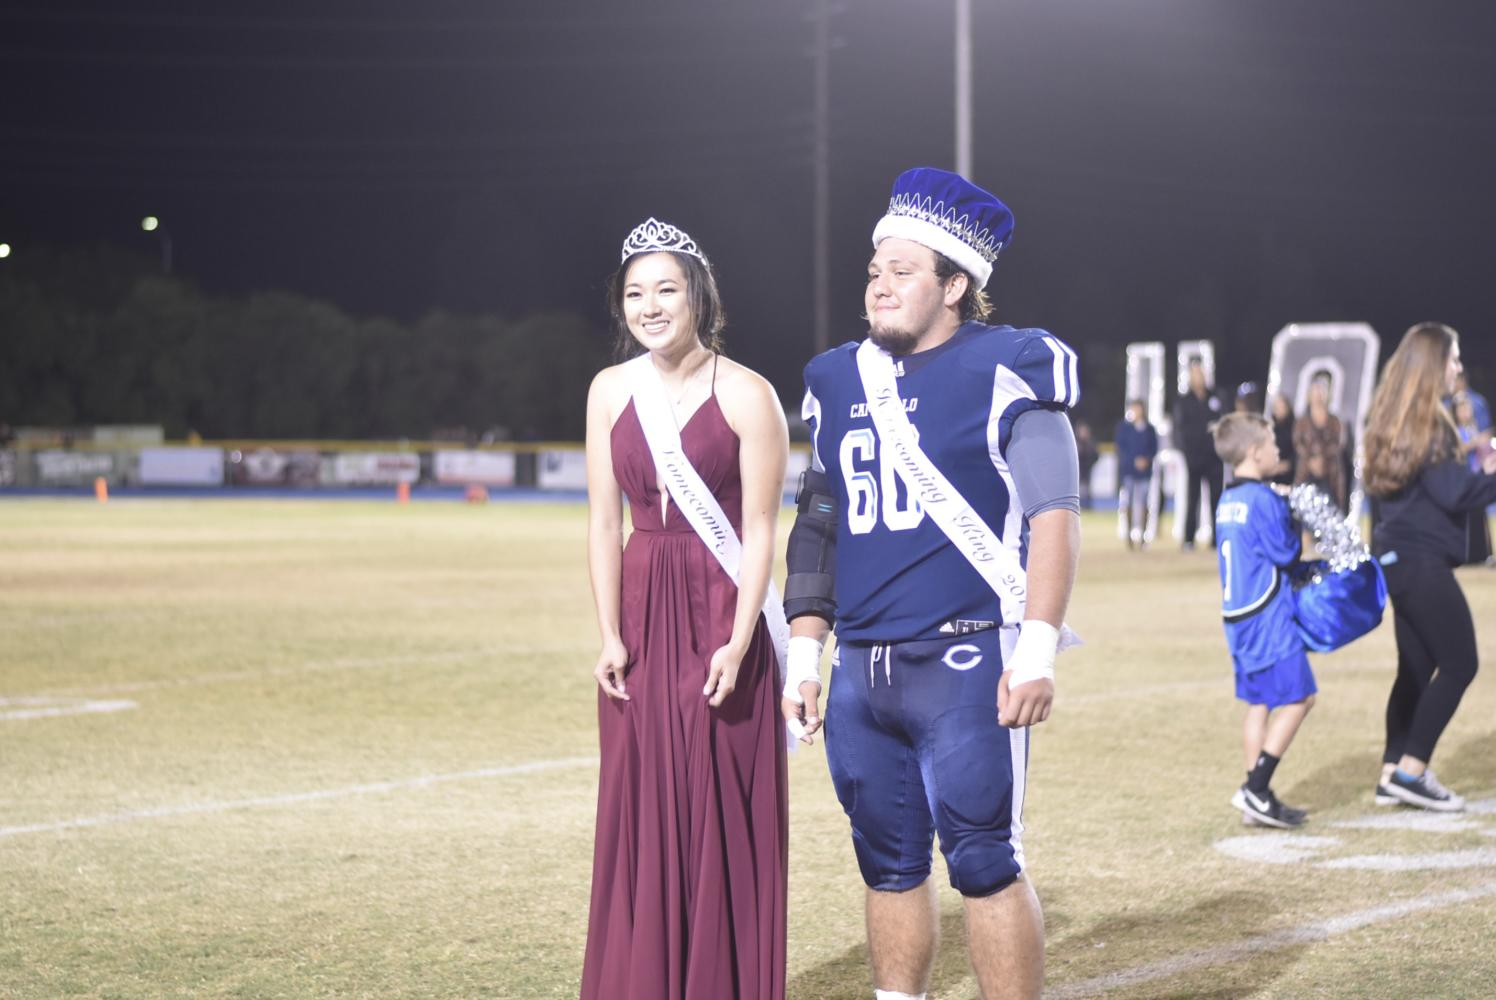 The Senior Homecoming Queen and King, Marissa Hiji and Damian Medina, stand before Cam High shortly after being crowned.